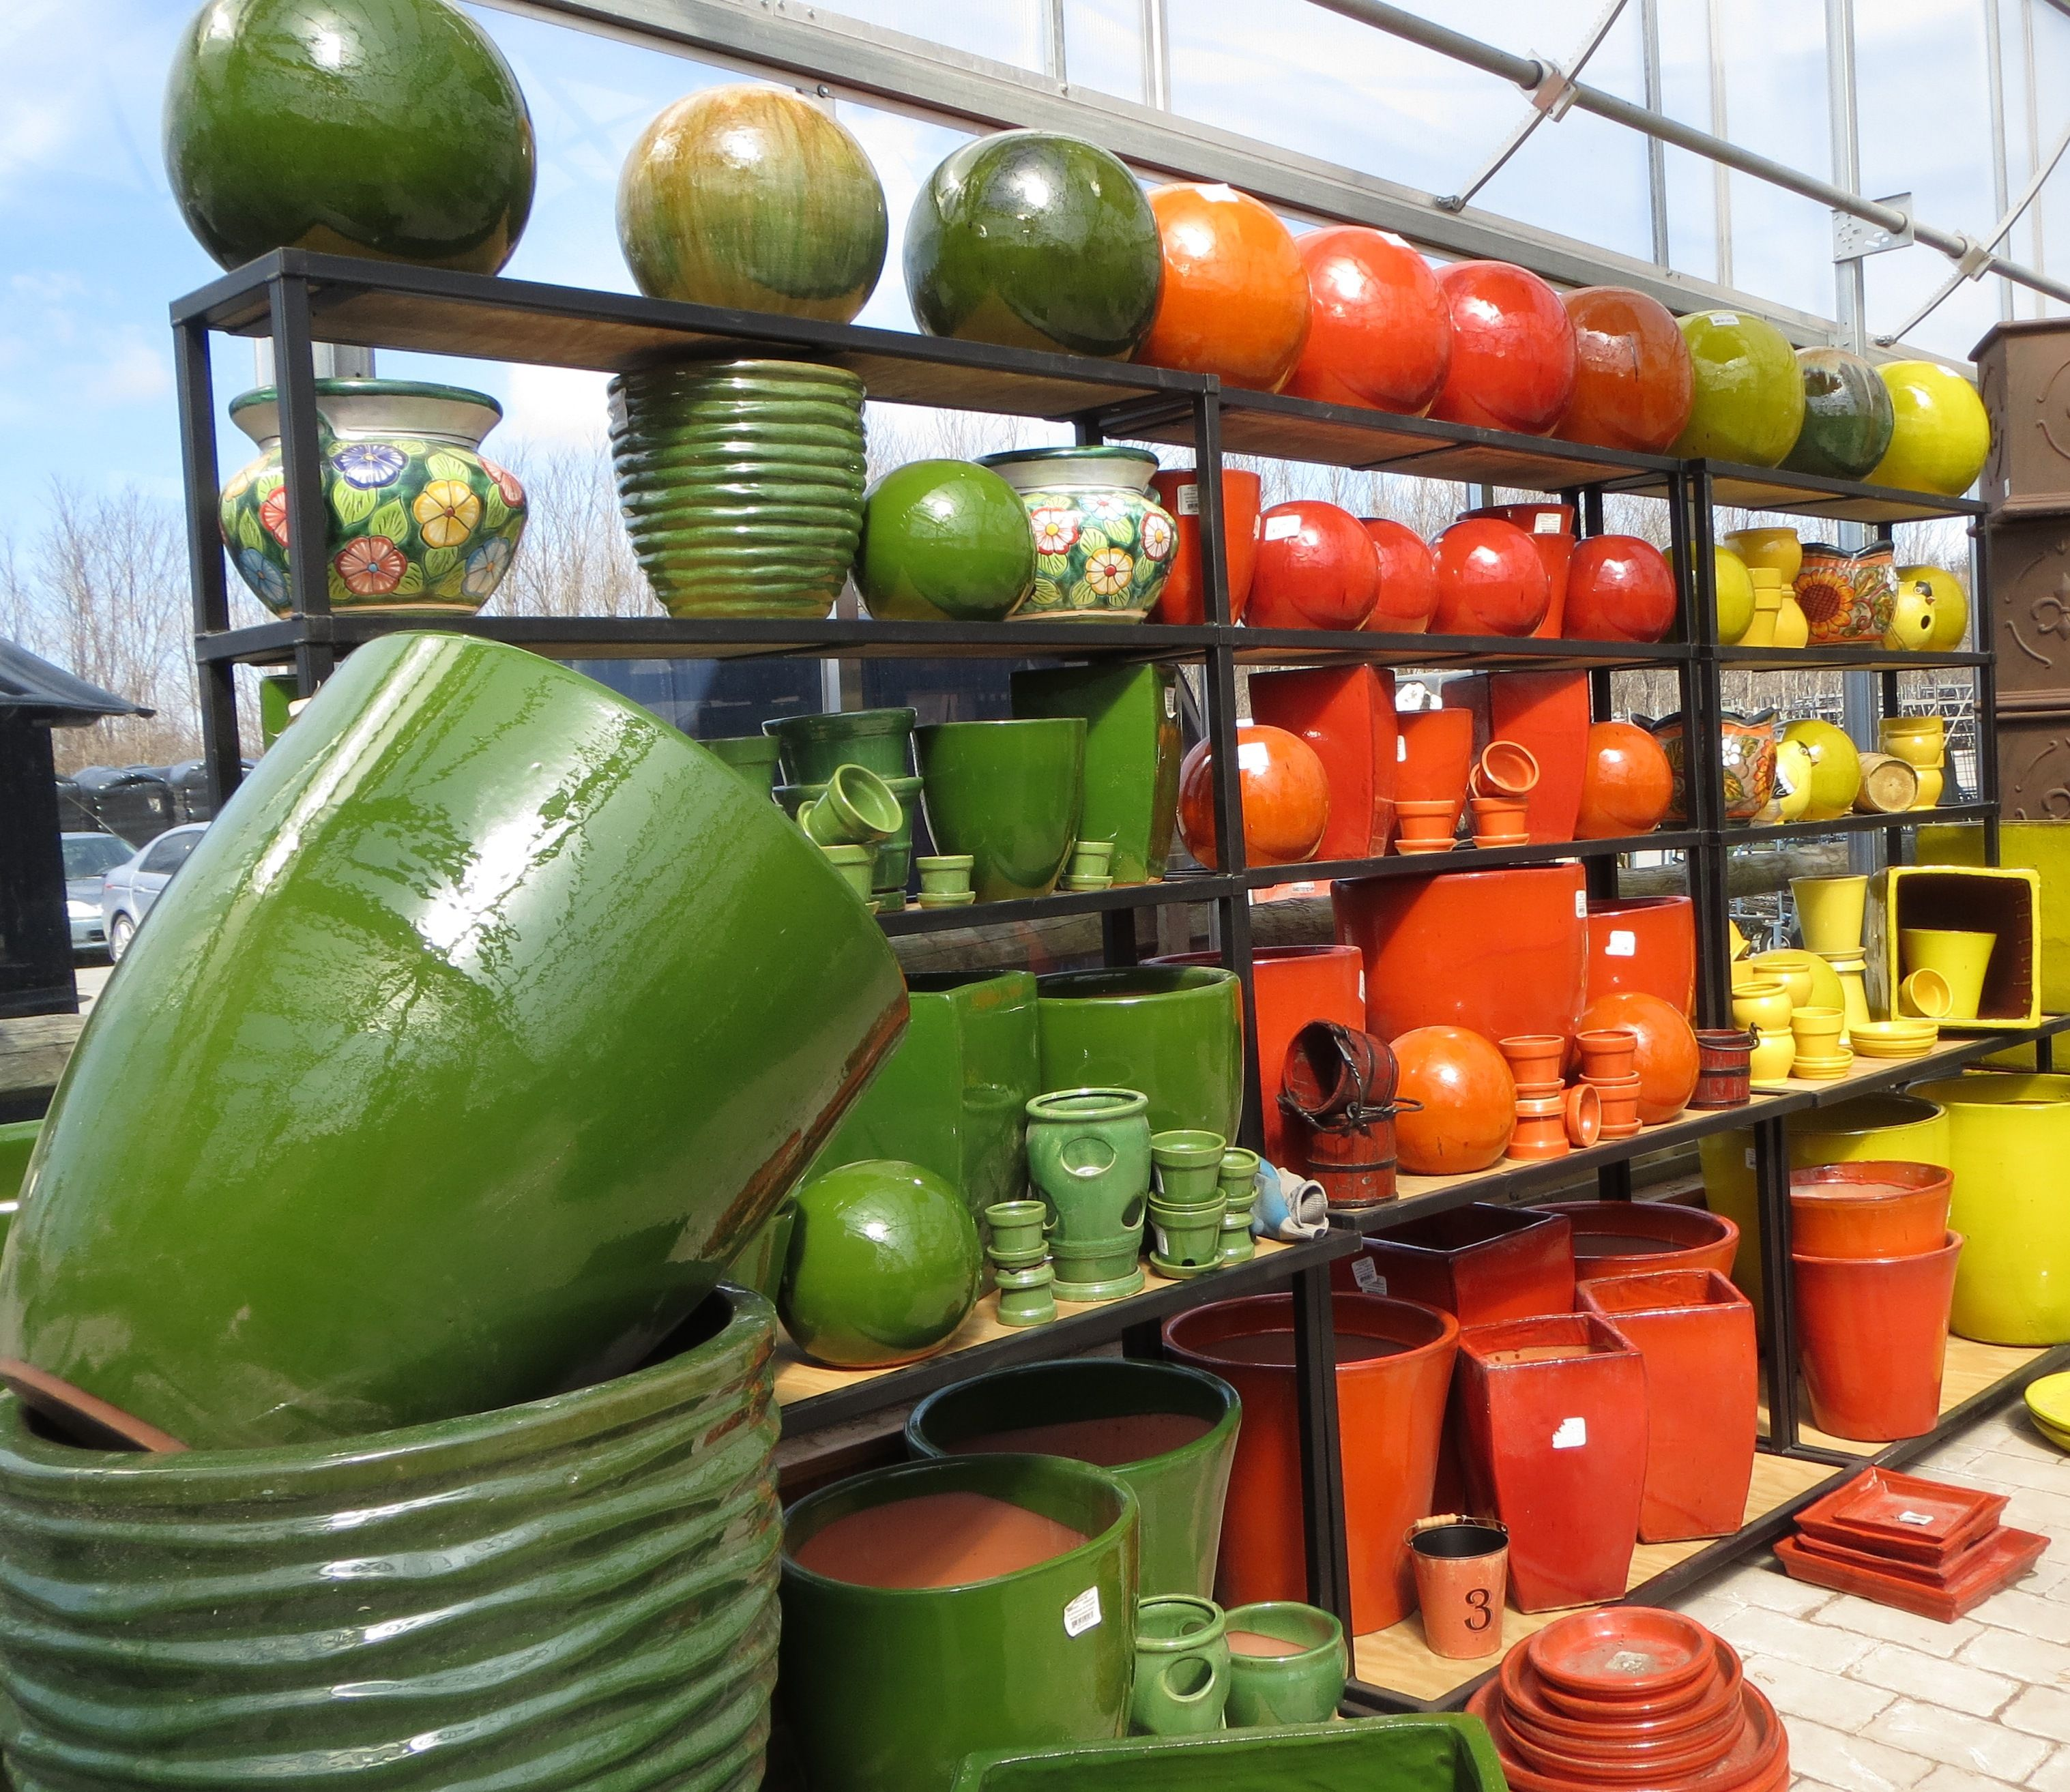 New Ceramics Bristol S Garden Center Victor Ny In Every Shape And Color Stop Get Ready For Spring With Colorful Container Gardens